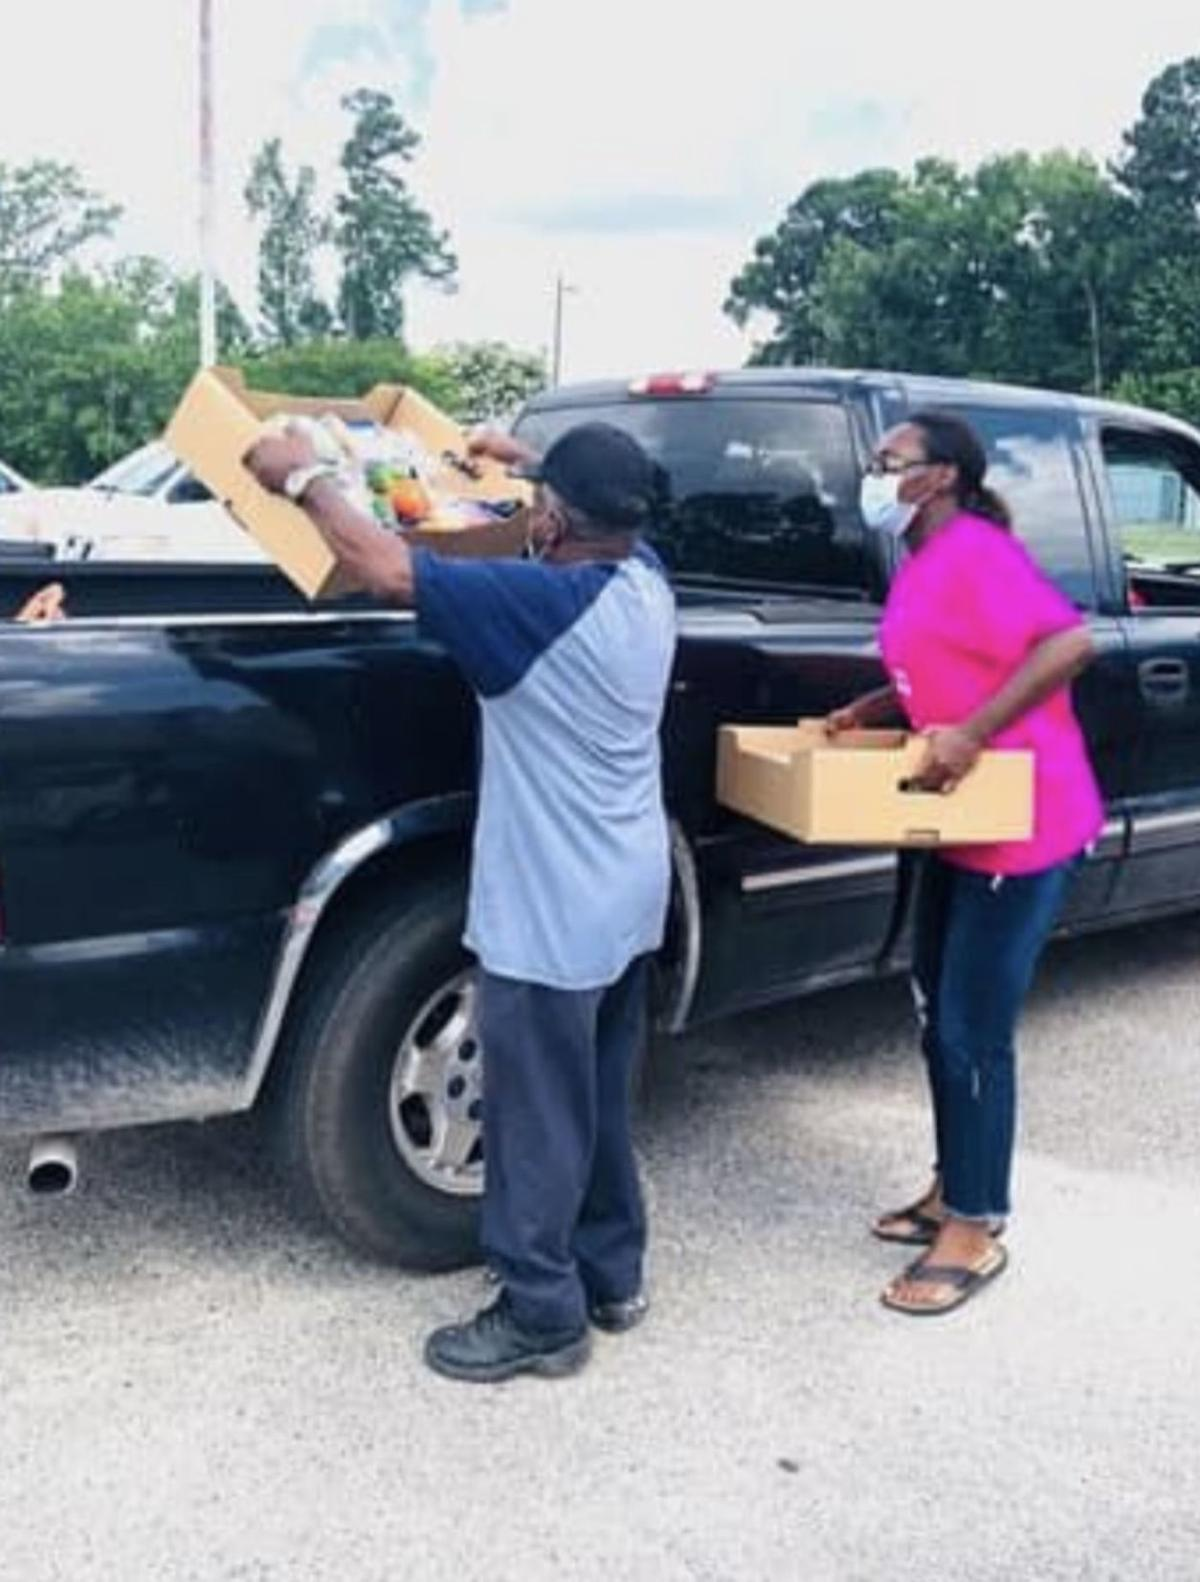 Tabernacle of God Ministries host food distribution